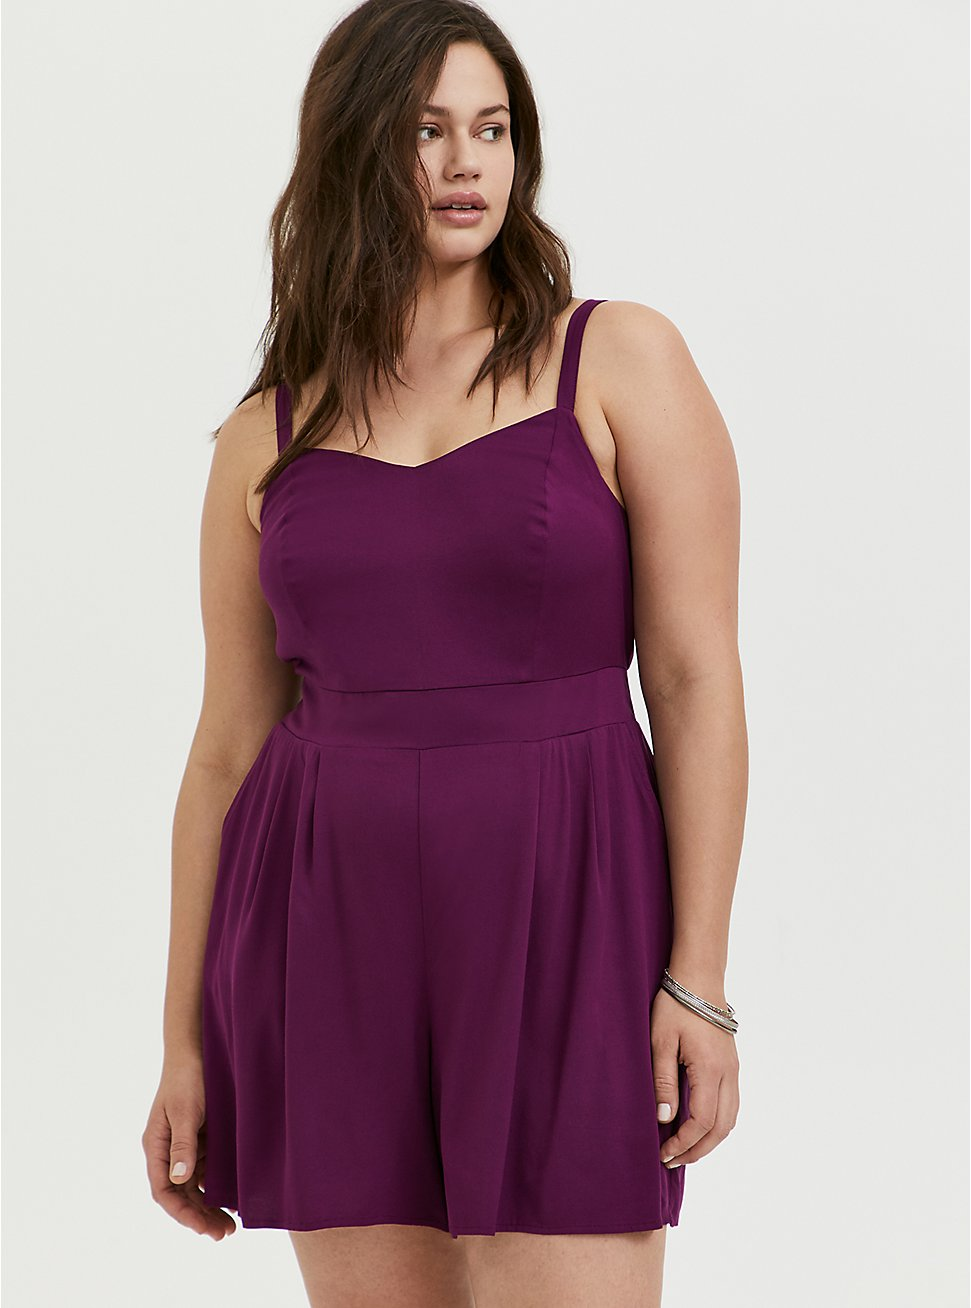 Plum Purple Challis Romper, DARK PURPLE, hi-res